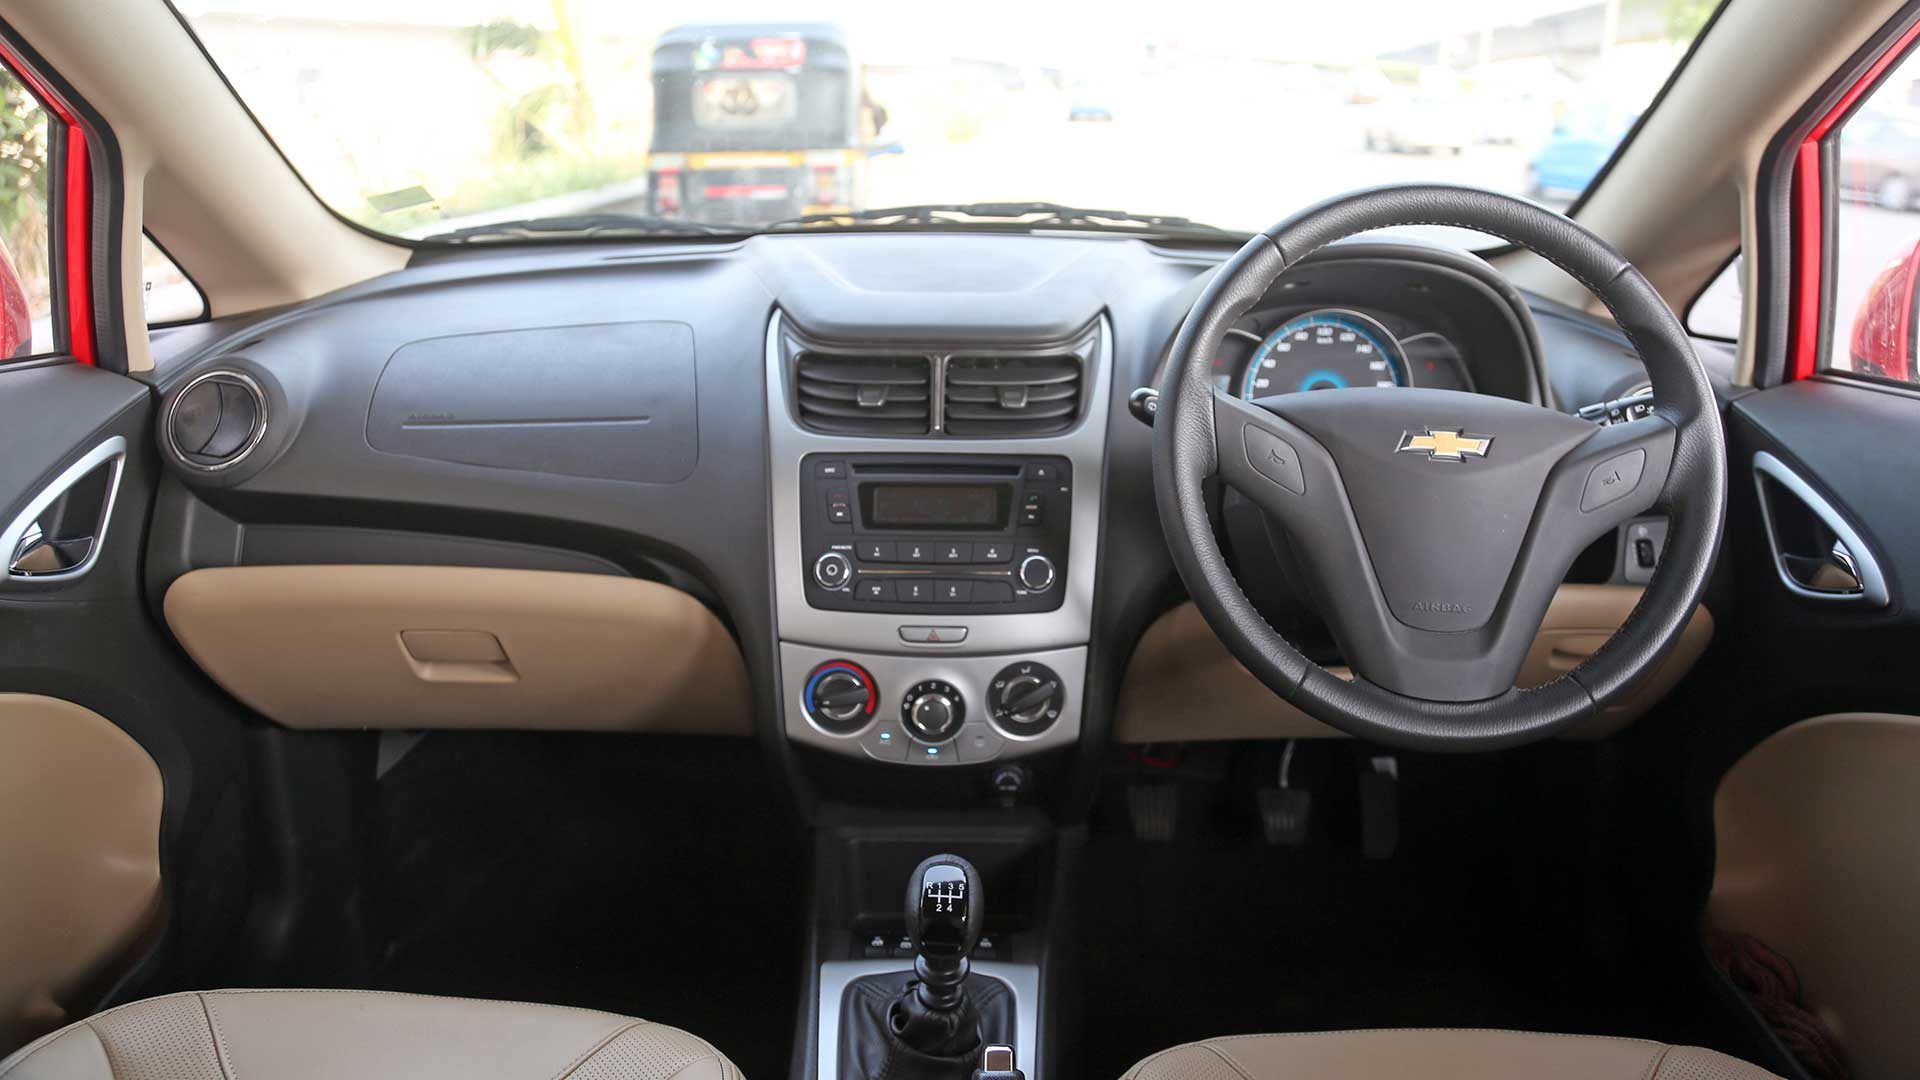 chevrolet sail u va 2014 price mileage reviews specification gallery overdrive. Black Bedroom Furniture Sets. Home Design Ideas